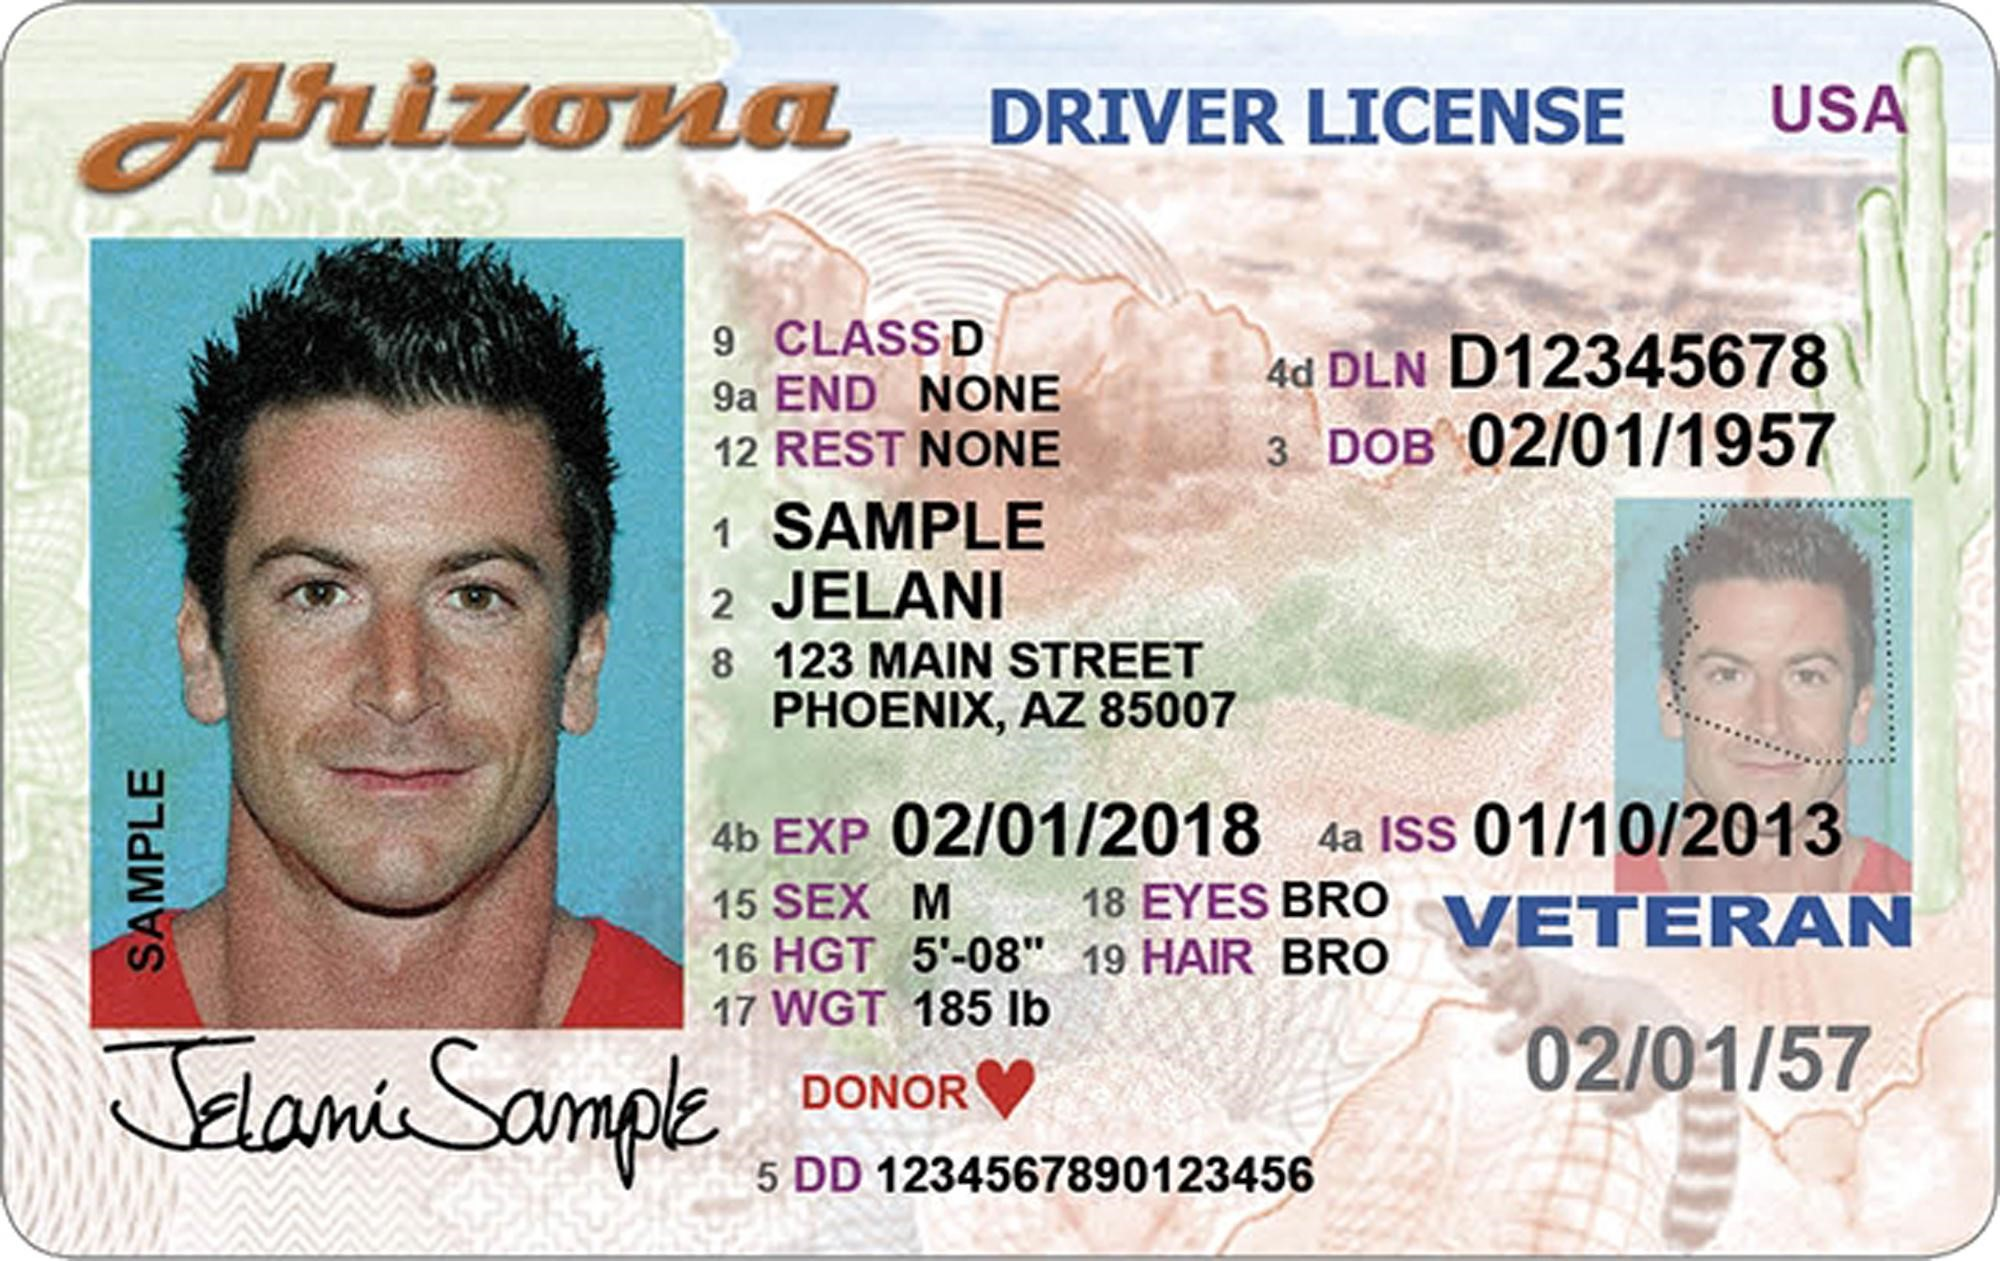 REAL ID: What happened at my appointment